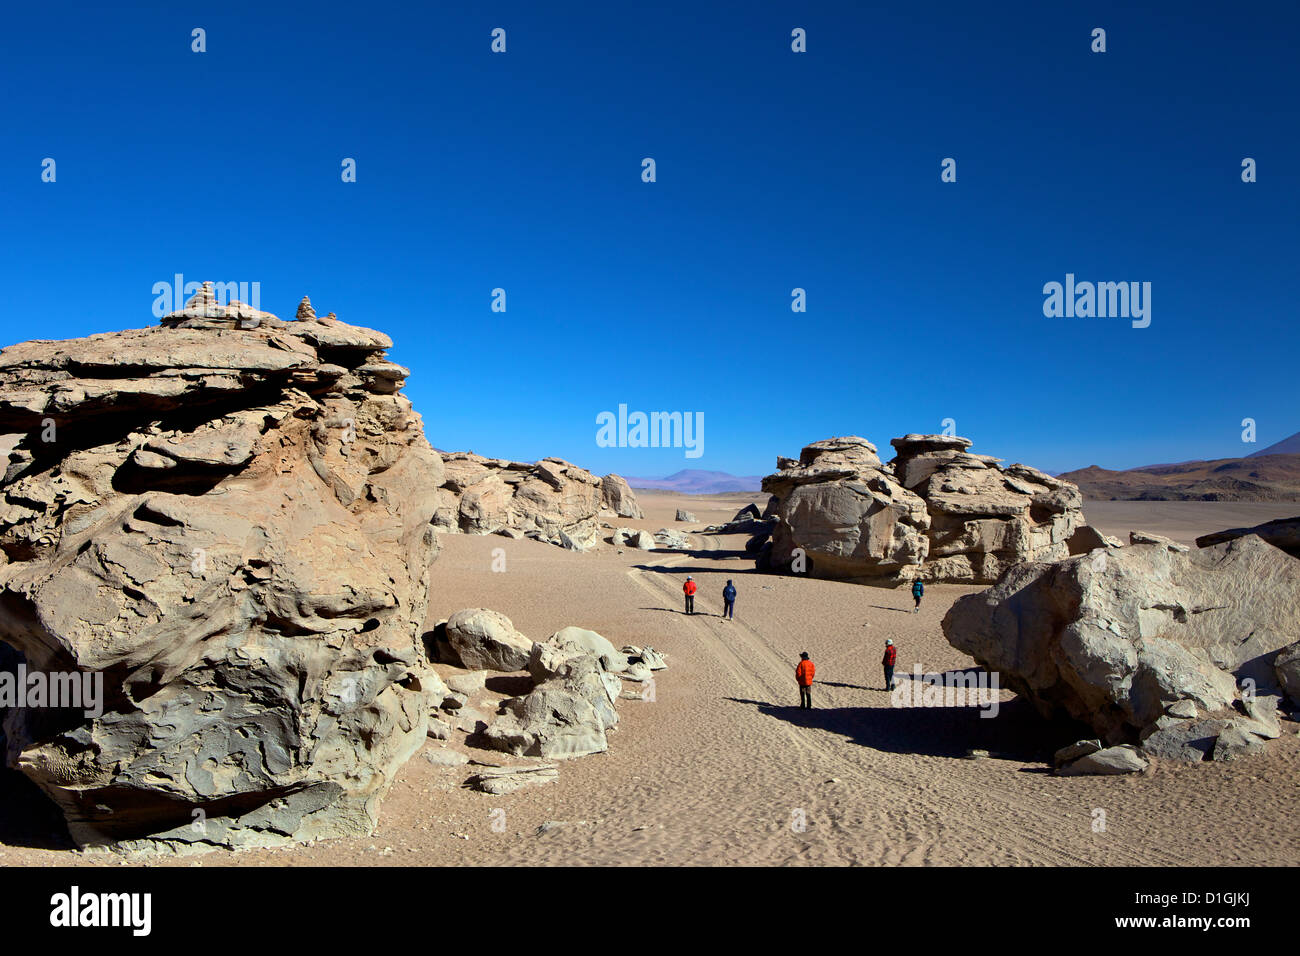 Rock formation in the Eduardo Avaroa Andean Fauna National Reserve, Southwest Highlands, Bolivia, South America - Stock Image